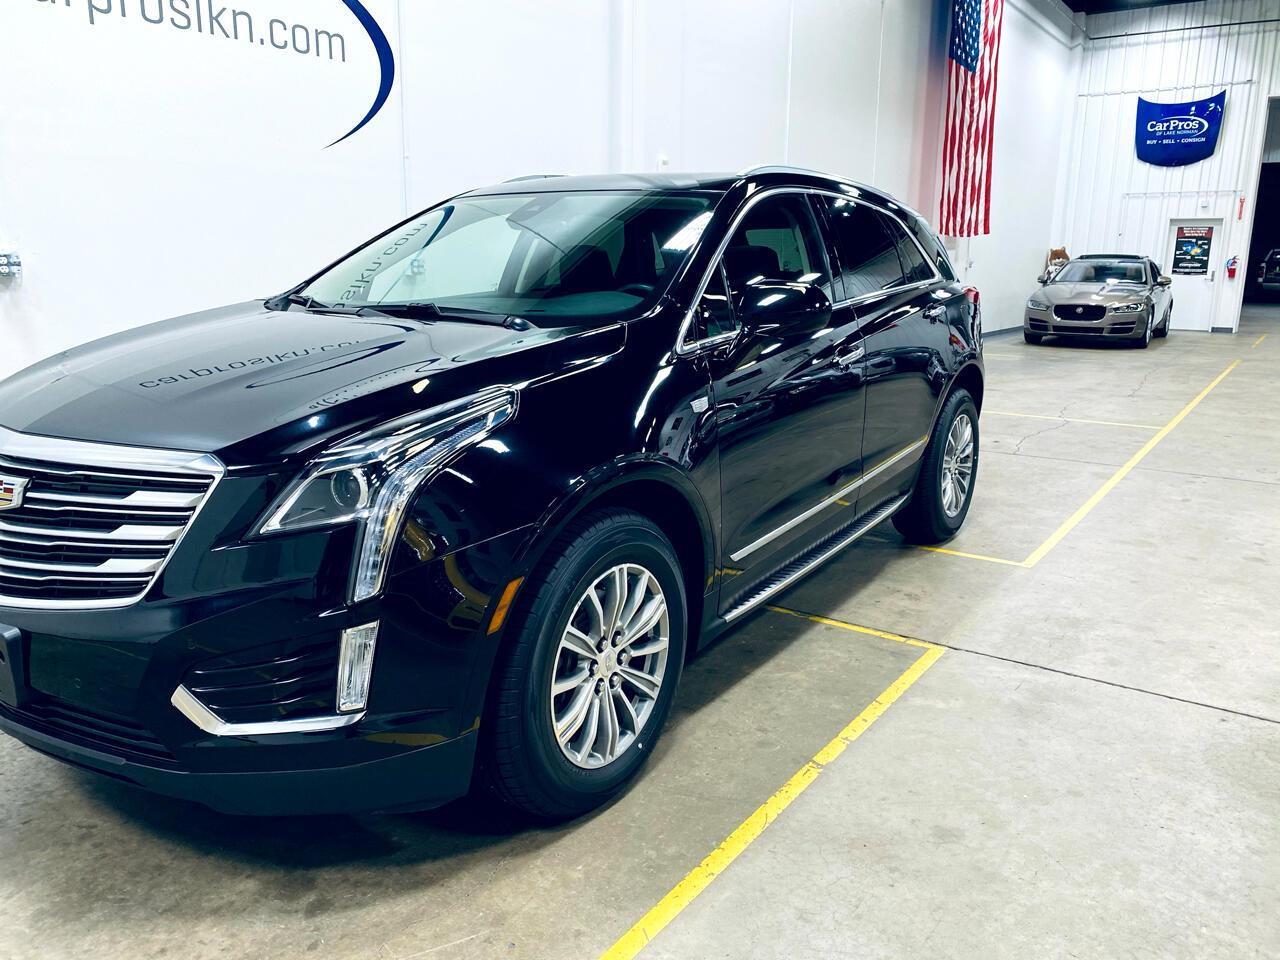 2017 Cadillac XT5 (CC-1416180) for sale in Mooresville, North Carolina